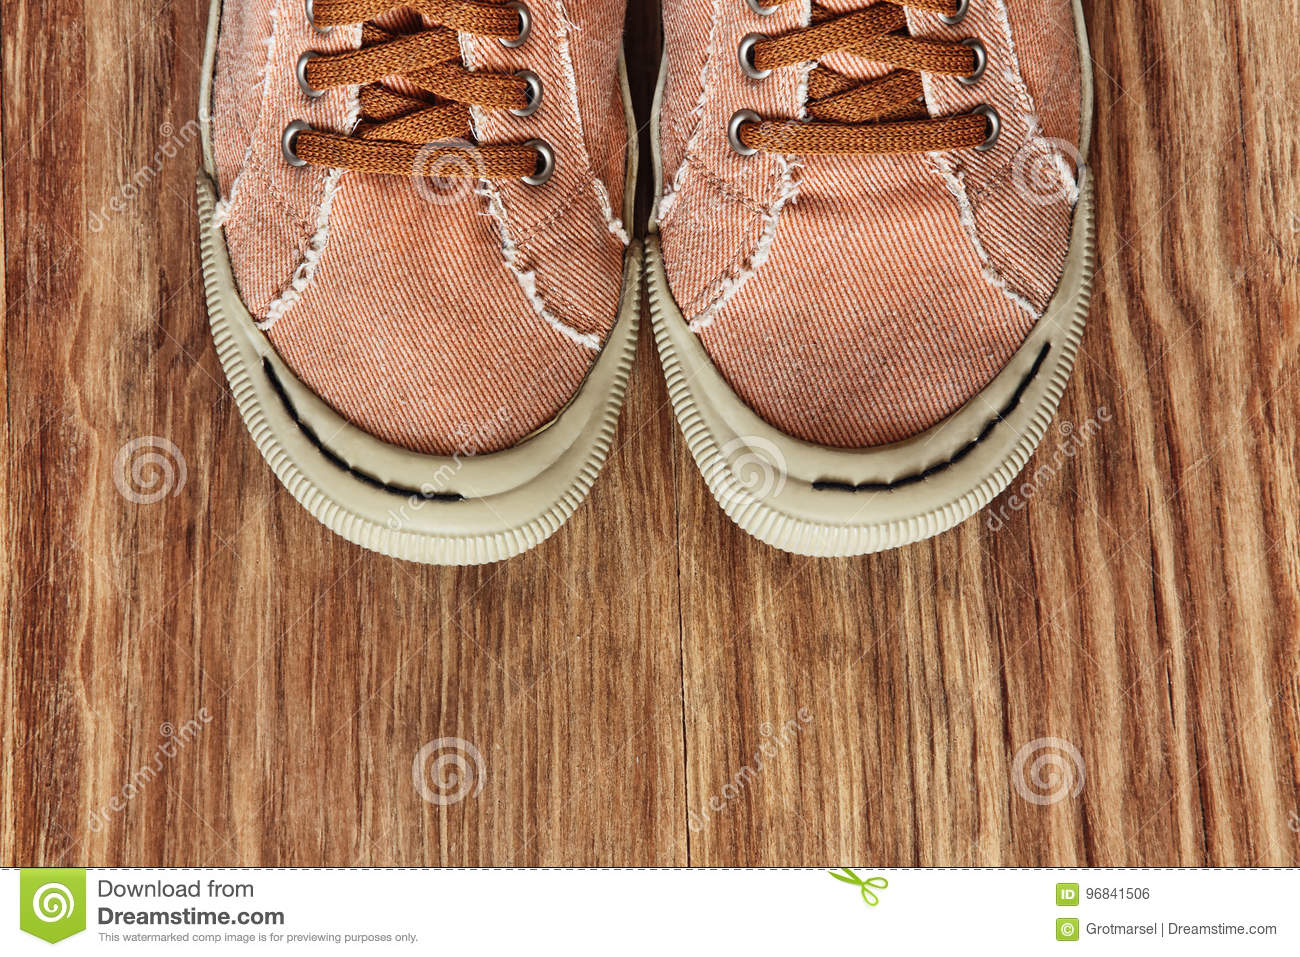 Front part of Gym shoes on grunge wooden background.Top view.